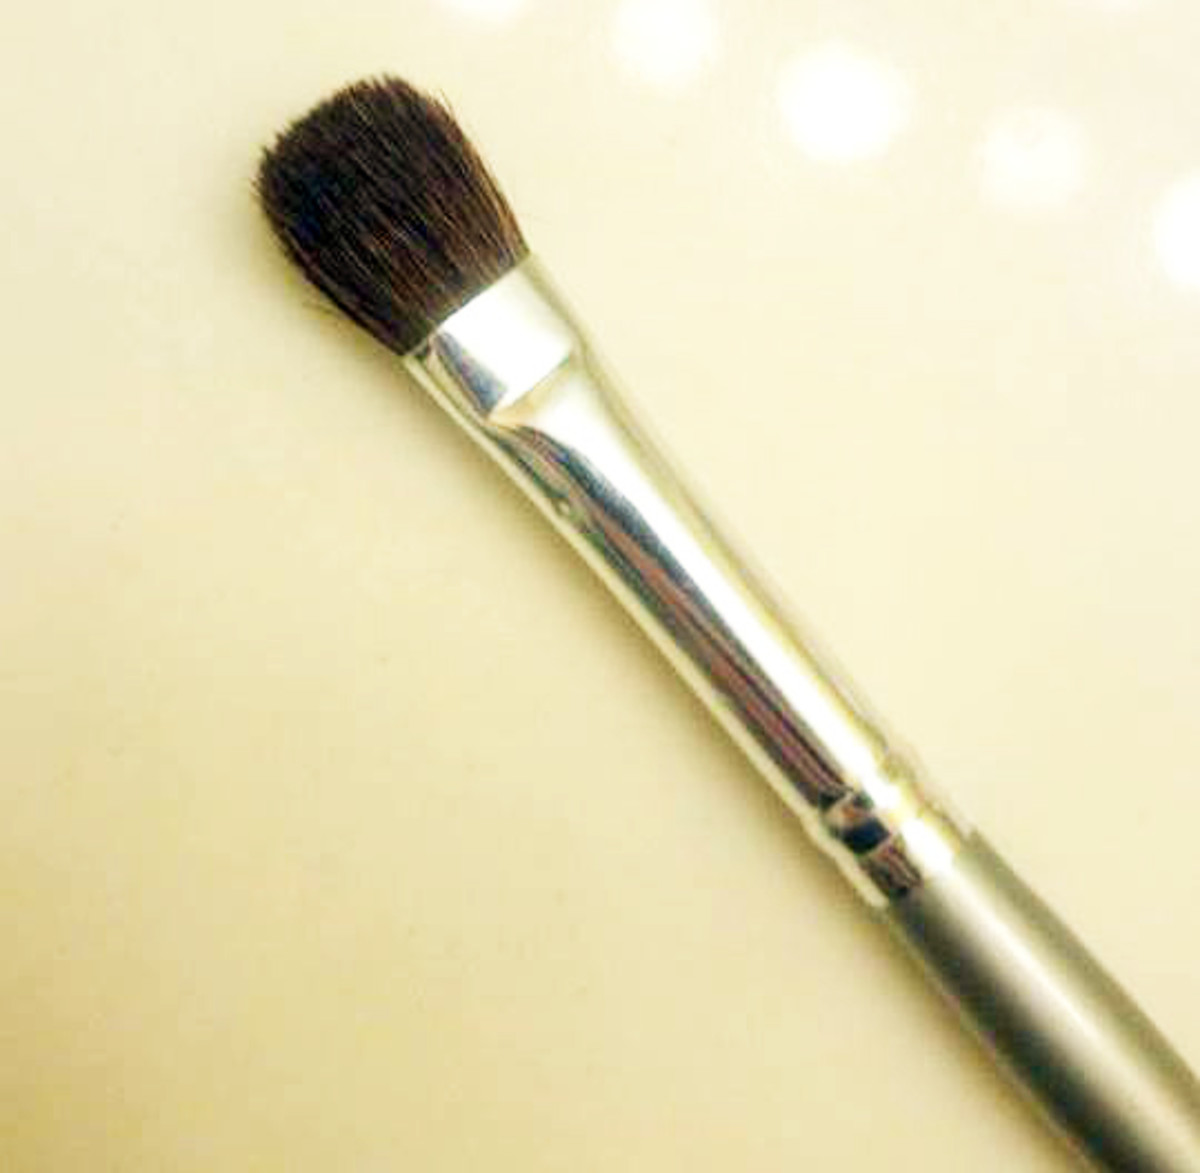 A blending brush will ensure you have no awkward harsh edges which wouldn't look natural for a simple everyday look.